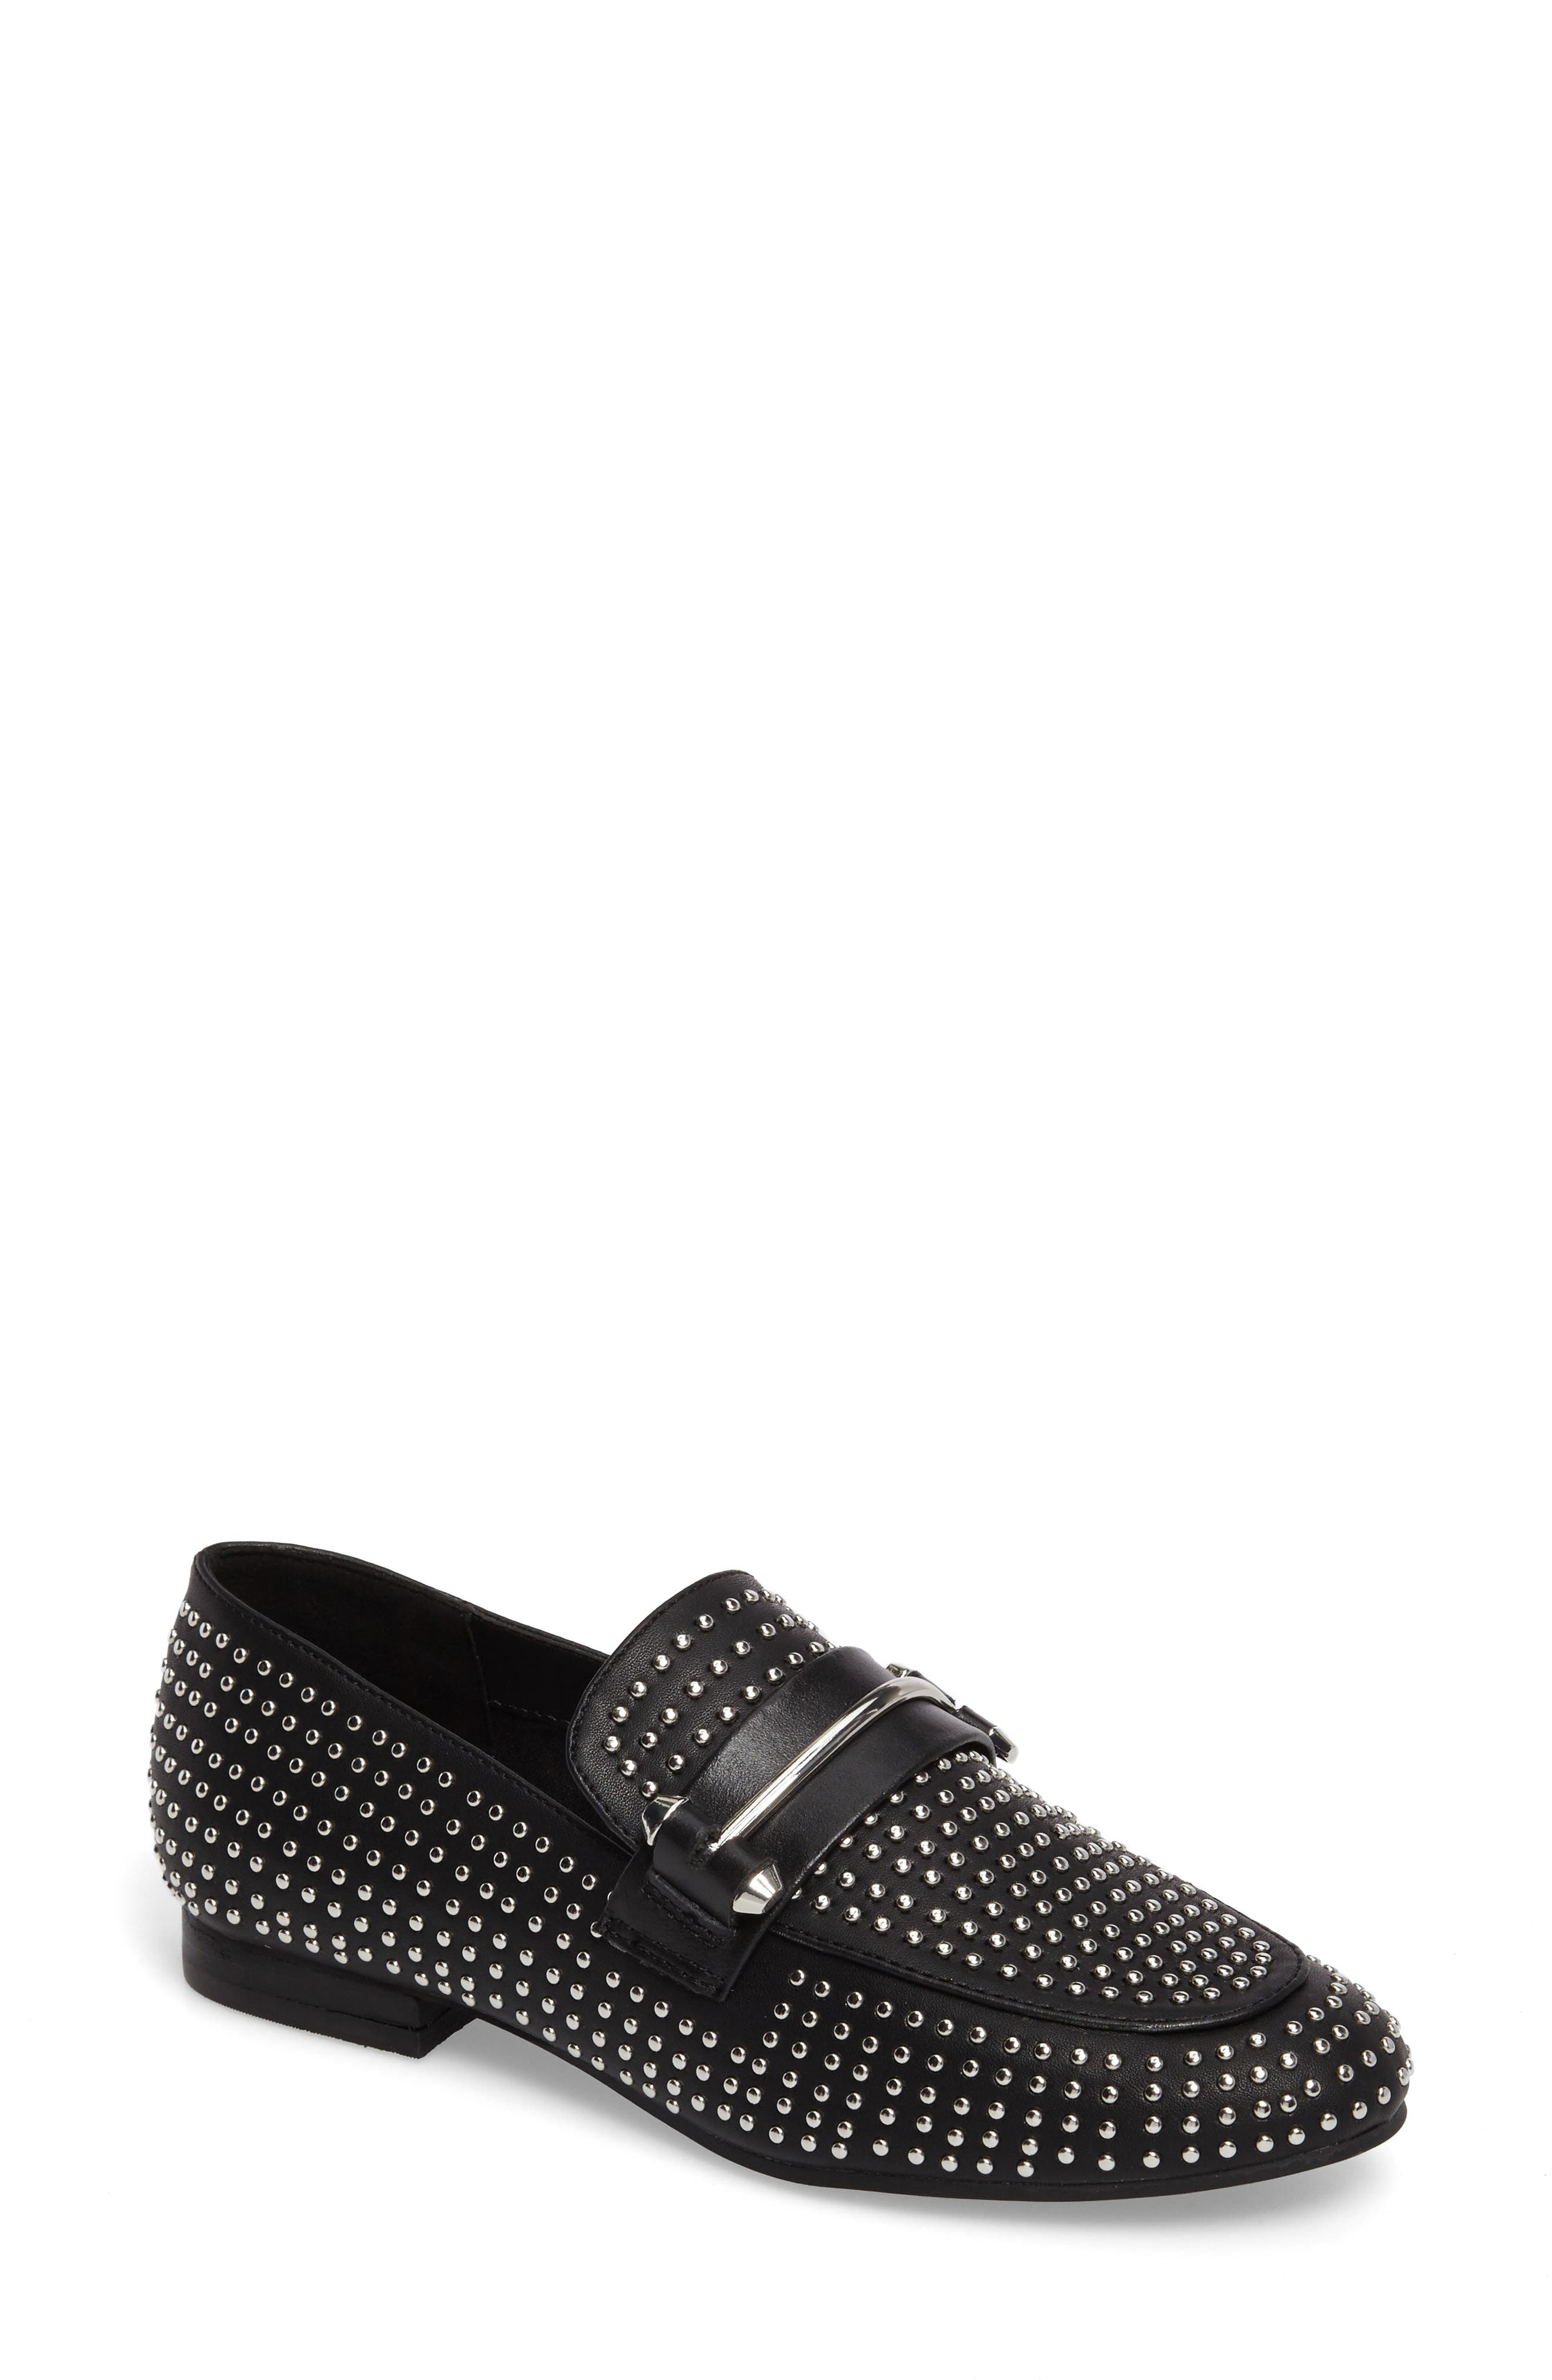 Kast Studded Loafer,                             Main thumbnail 1, color,                             001